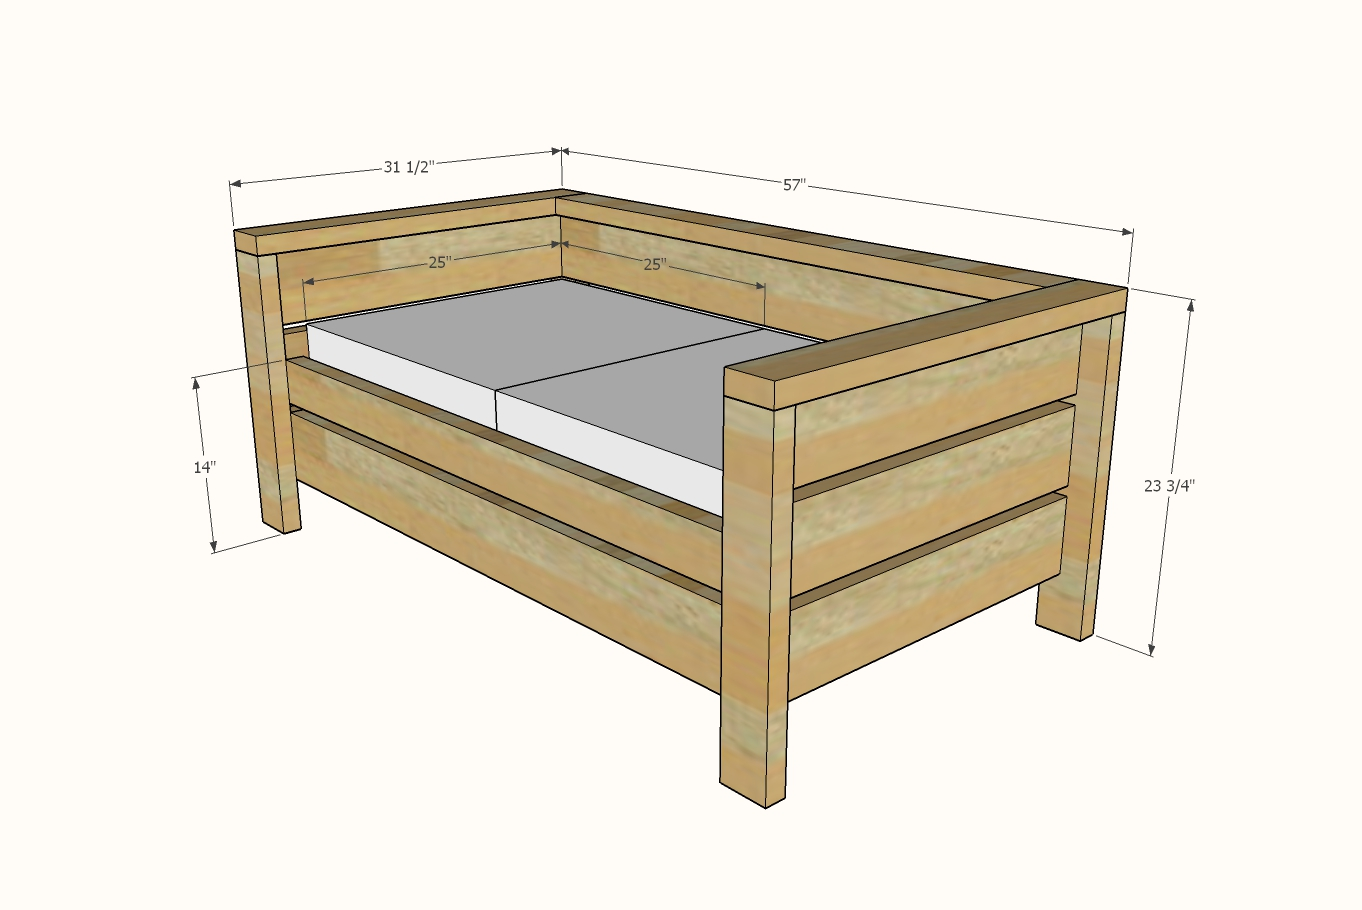 dimensions of modern outdoor loveseat